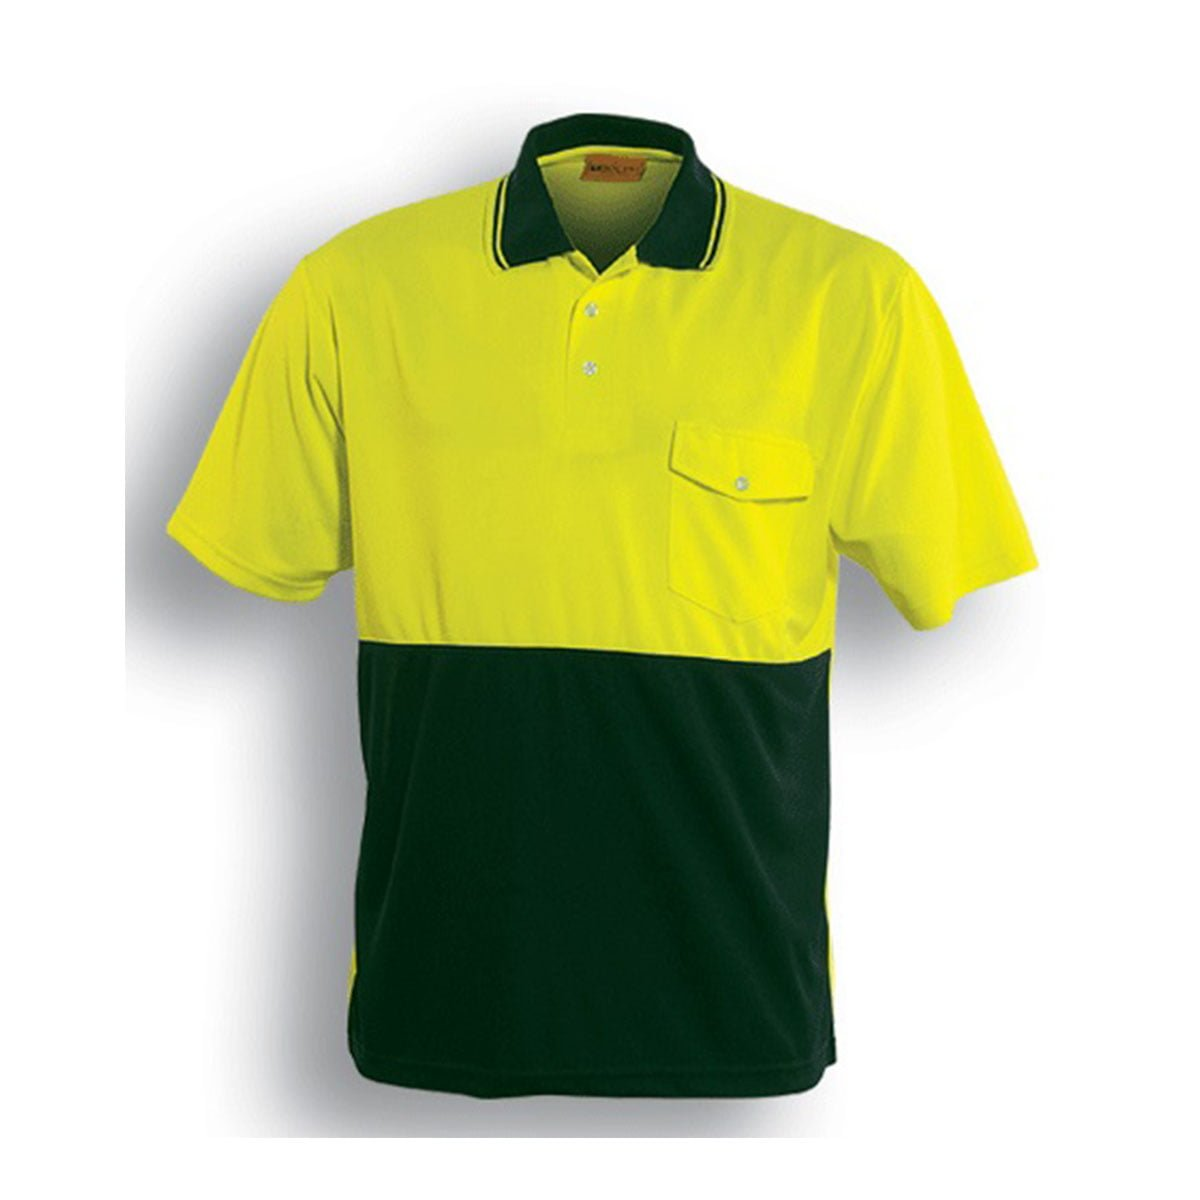 HI-VIS SAFETY POLO – SHORT SLEEVE-Lime / Bottle